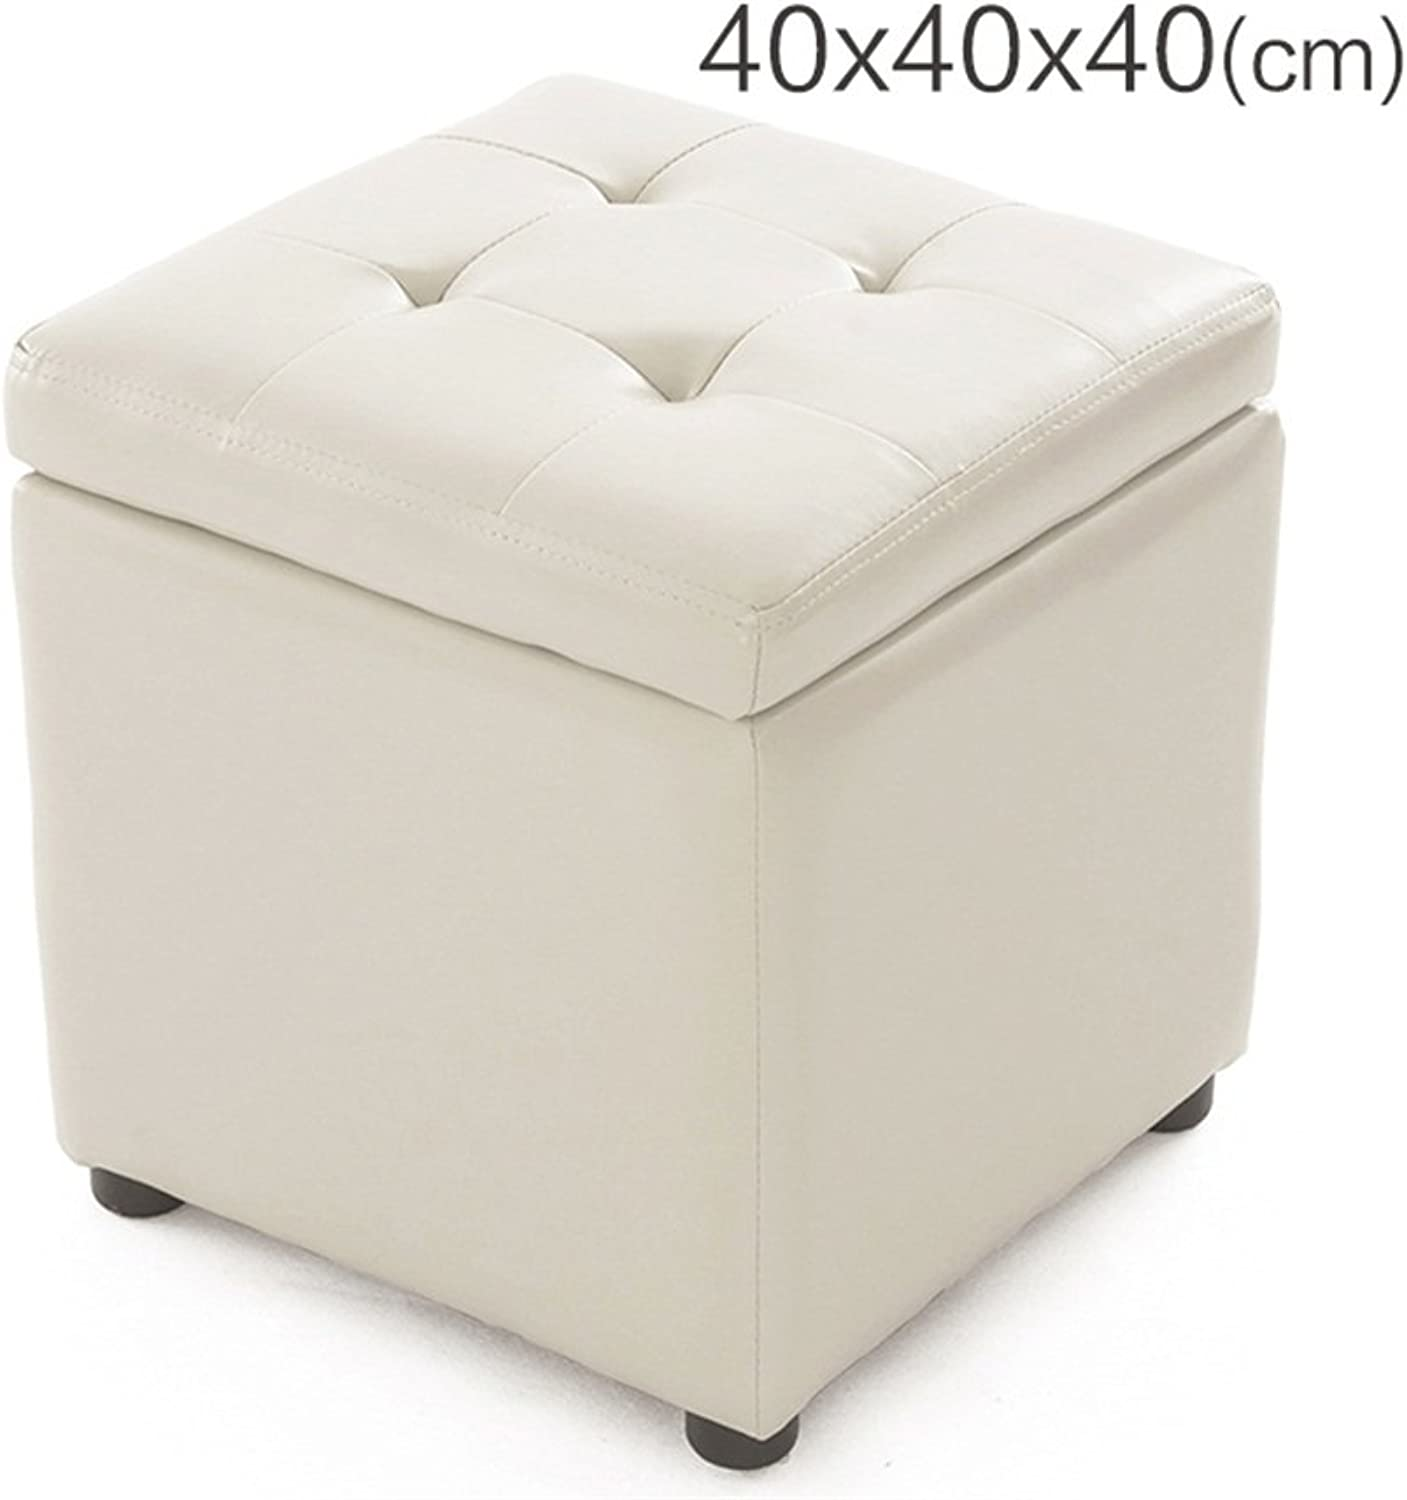 Solid Wood ,PU Storage Stool, Low Stool, Sofa Stool, shoes Bench, Stool Simple Modern White (Size   2(40  40  40cm))